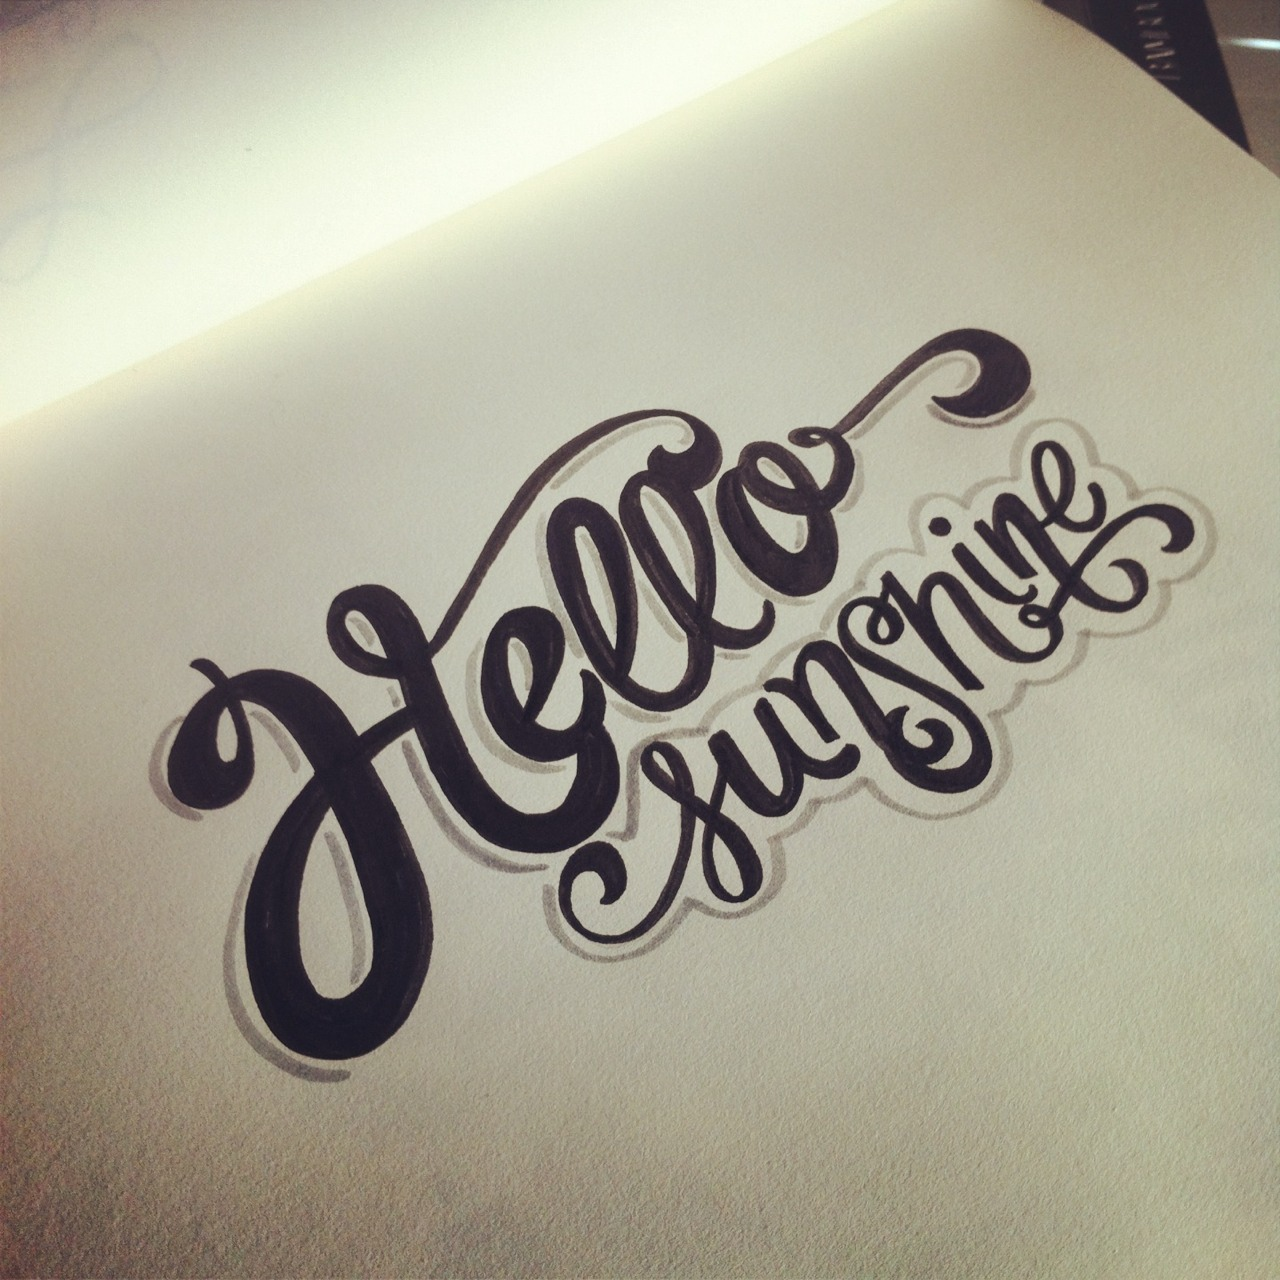 Drawn typography lettered Sunshine! Typography #lettering #lettering #type